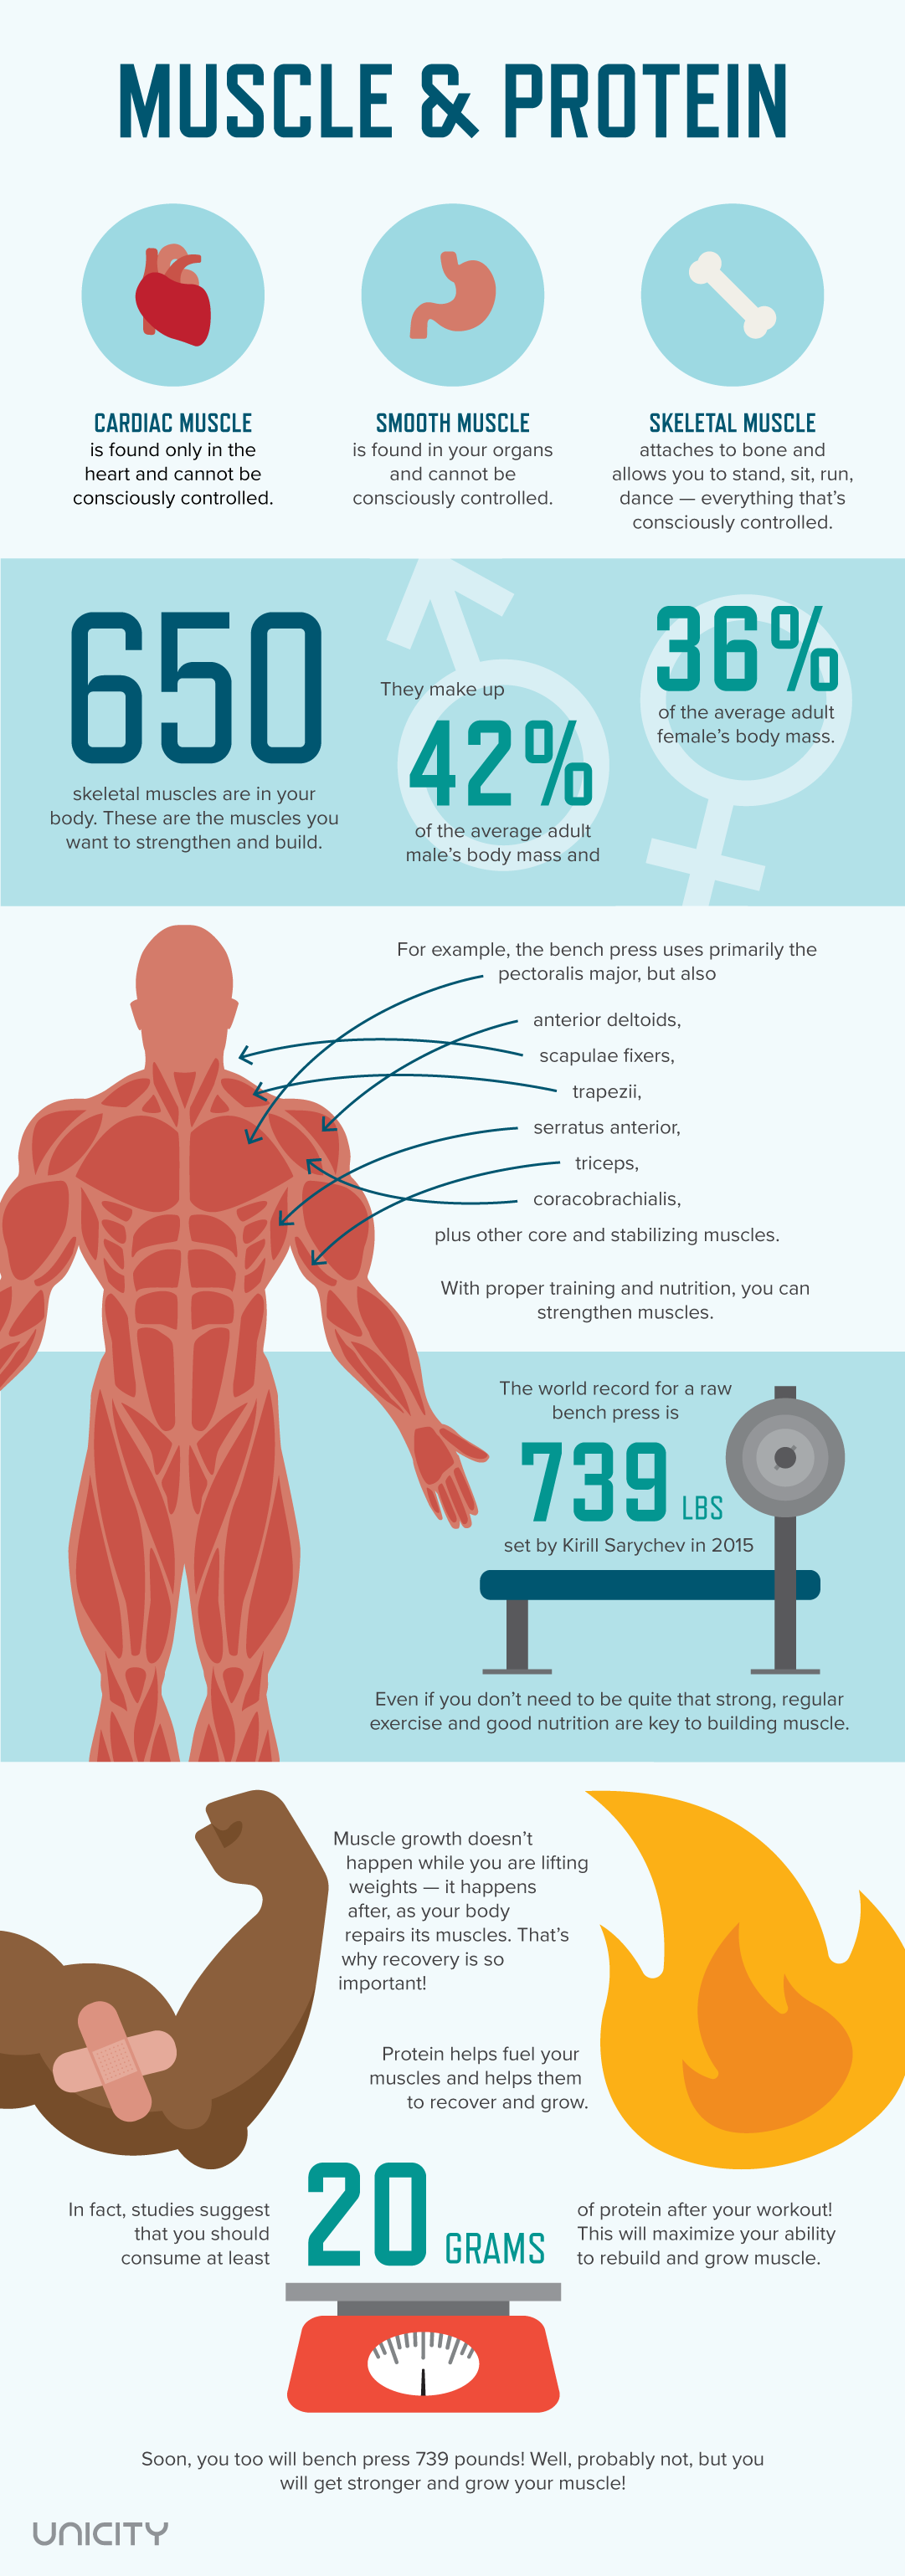 Muscle & Protein Infographic | Unicity Blog